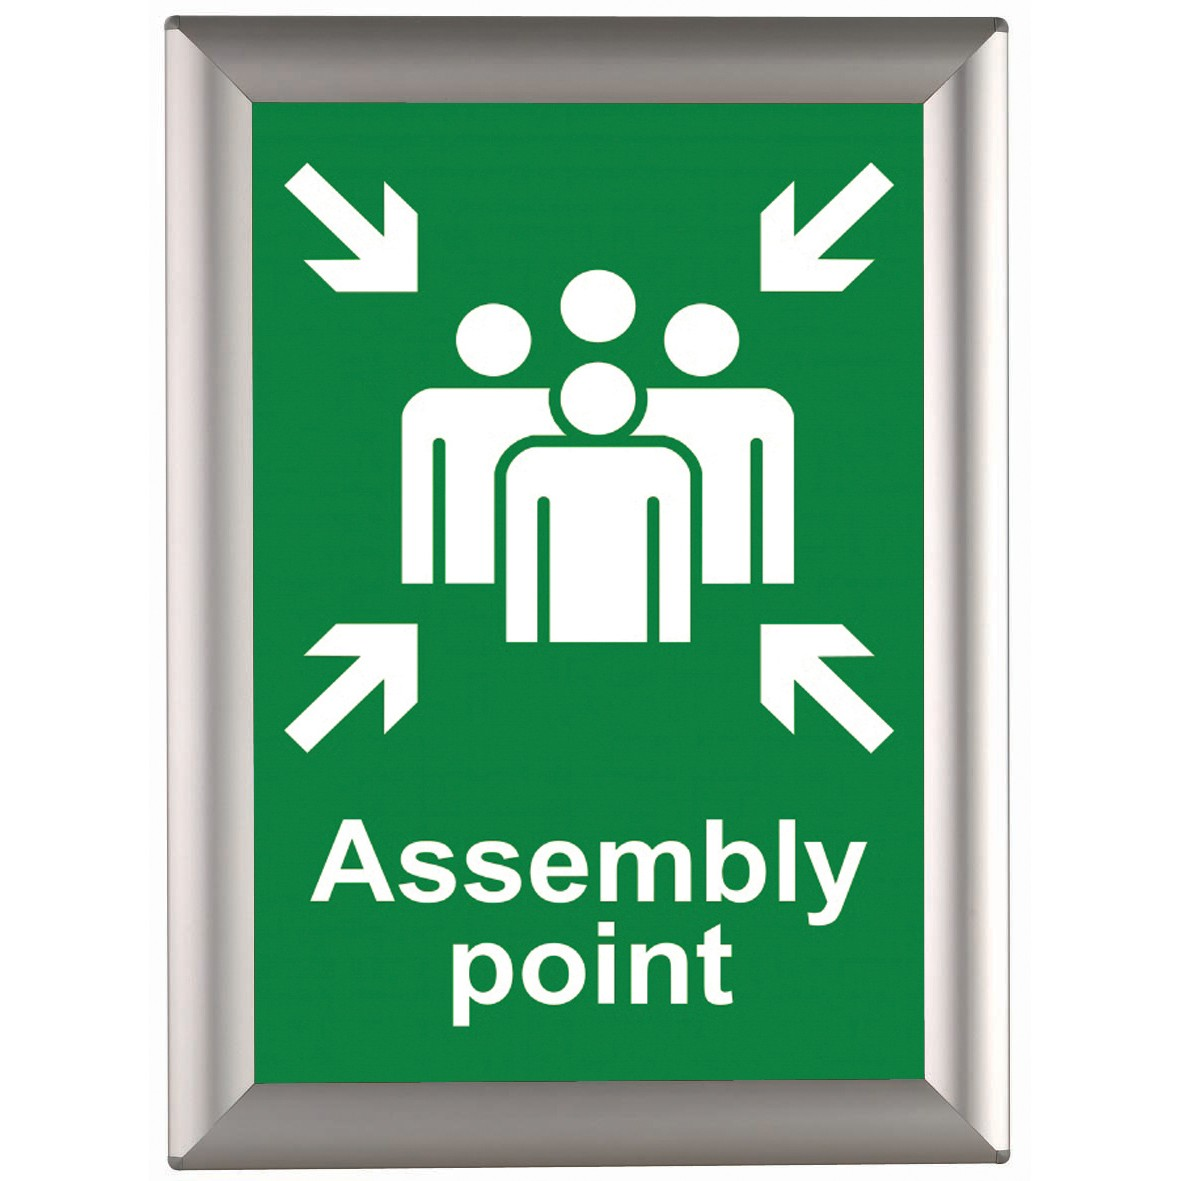 Busygrip Aluminium Poster Frame A4 - H297 X W210Mm Pack 5